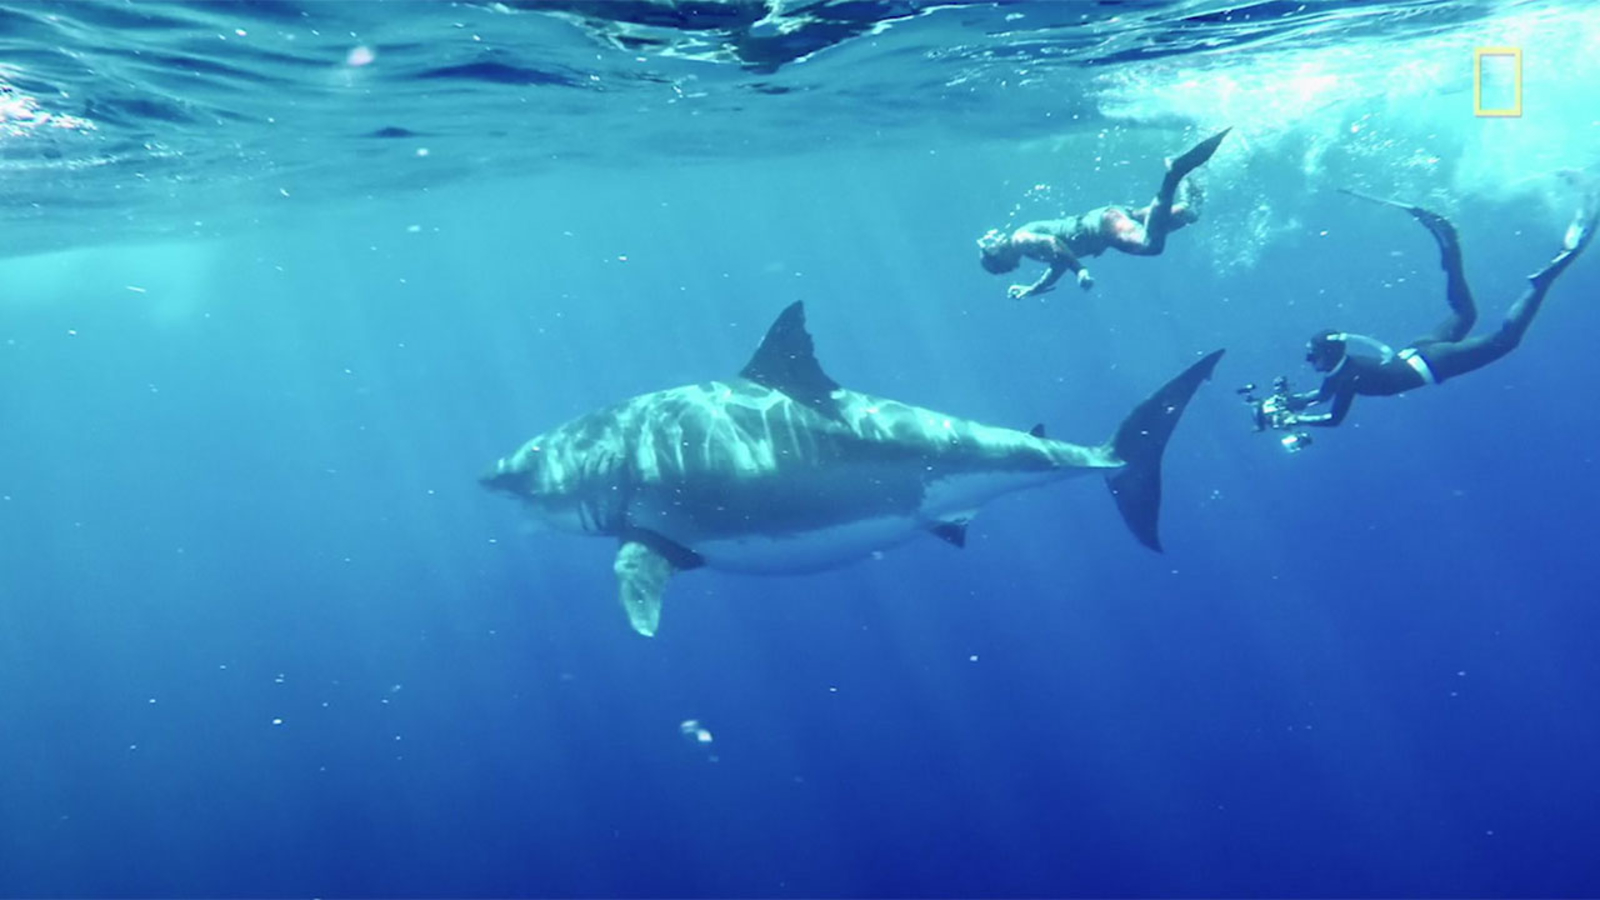 Deep Blue, one of world's largest great white sharks ...